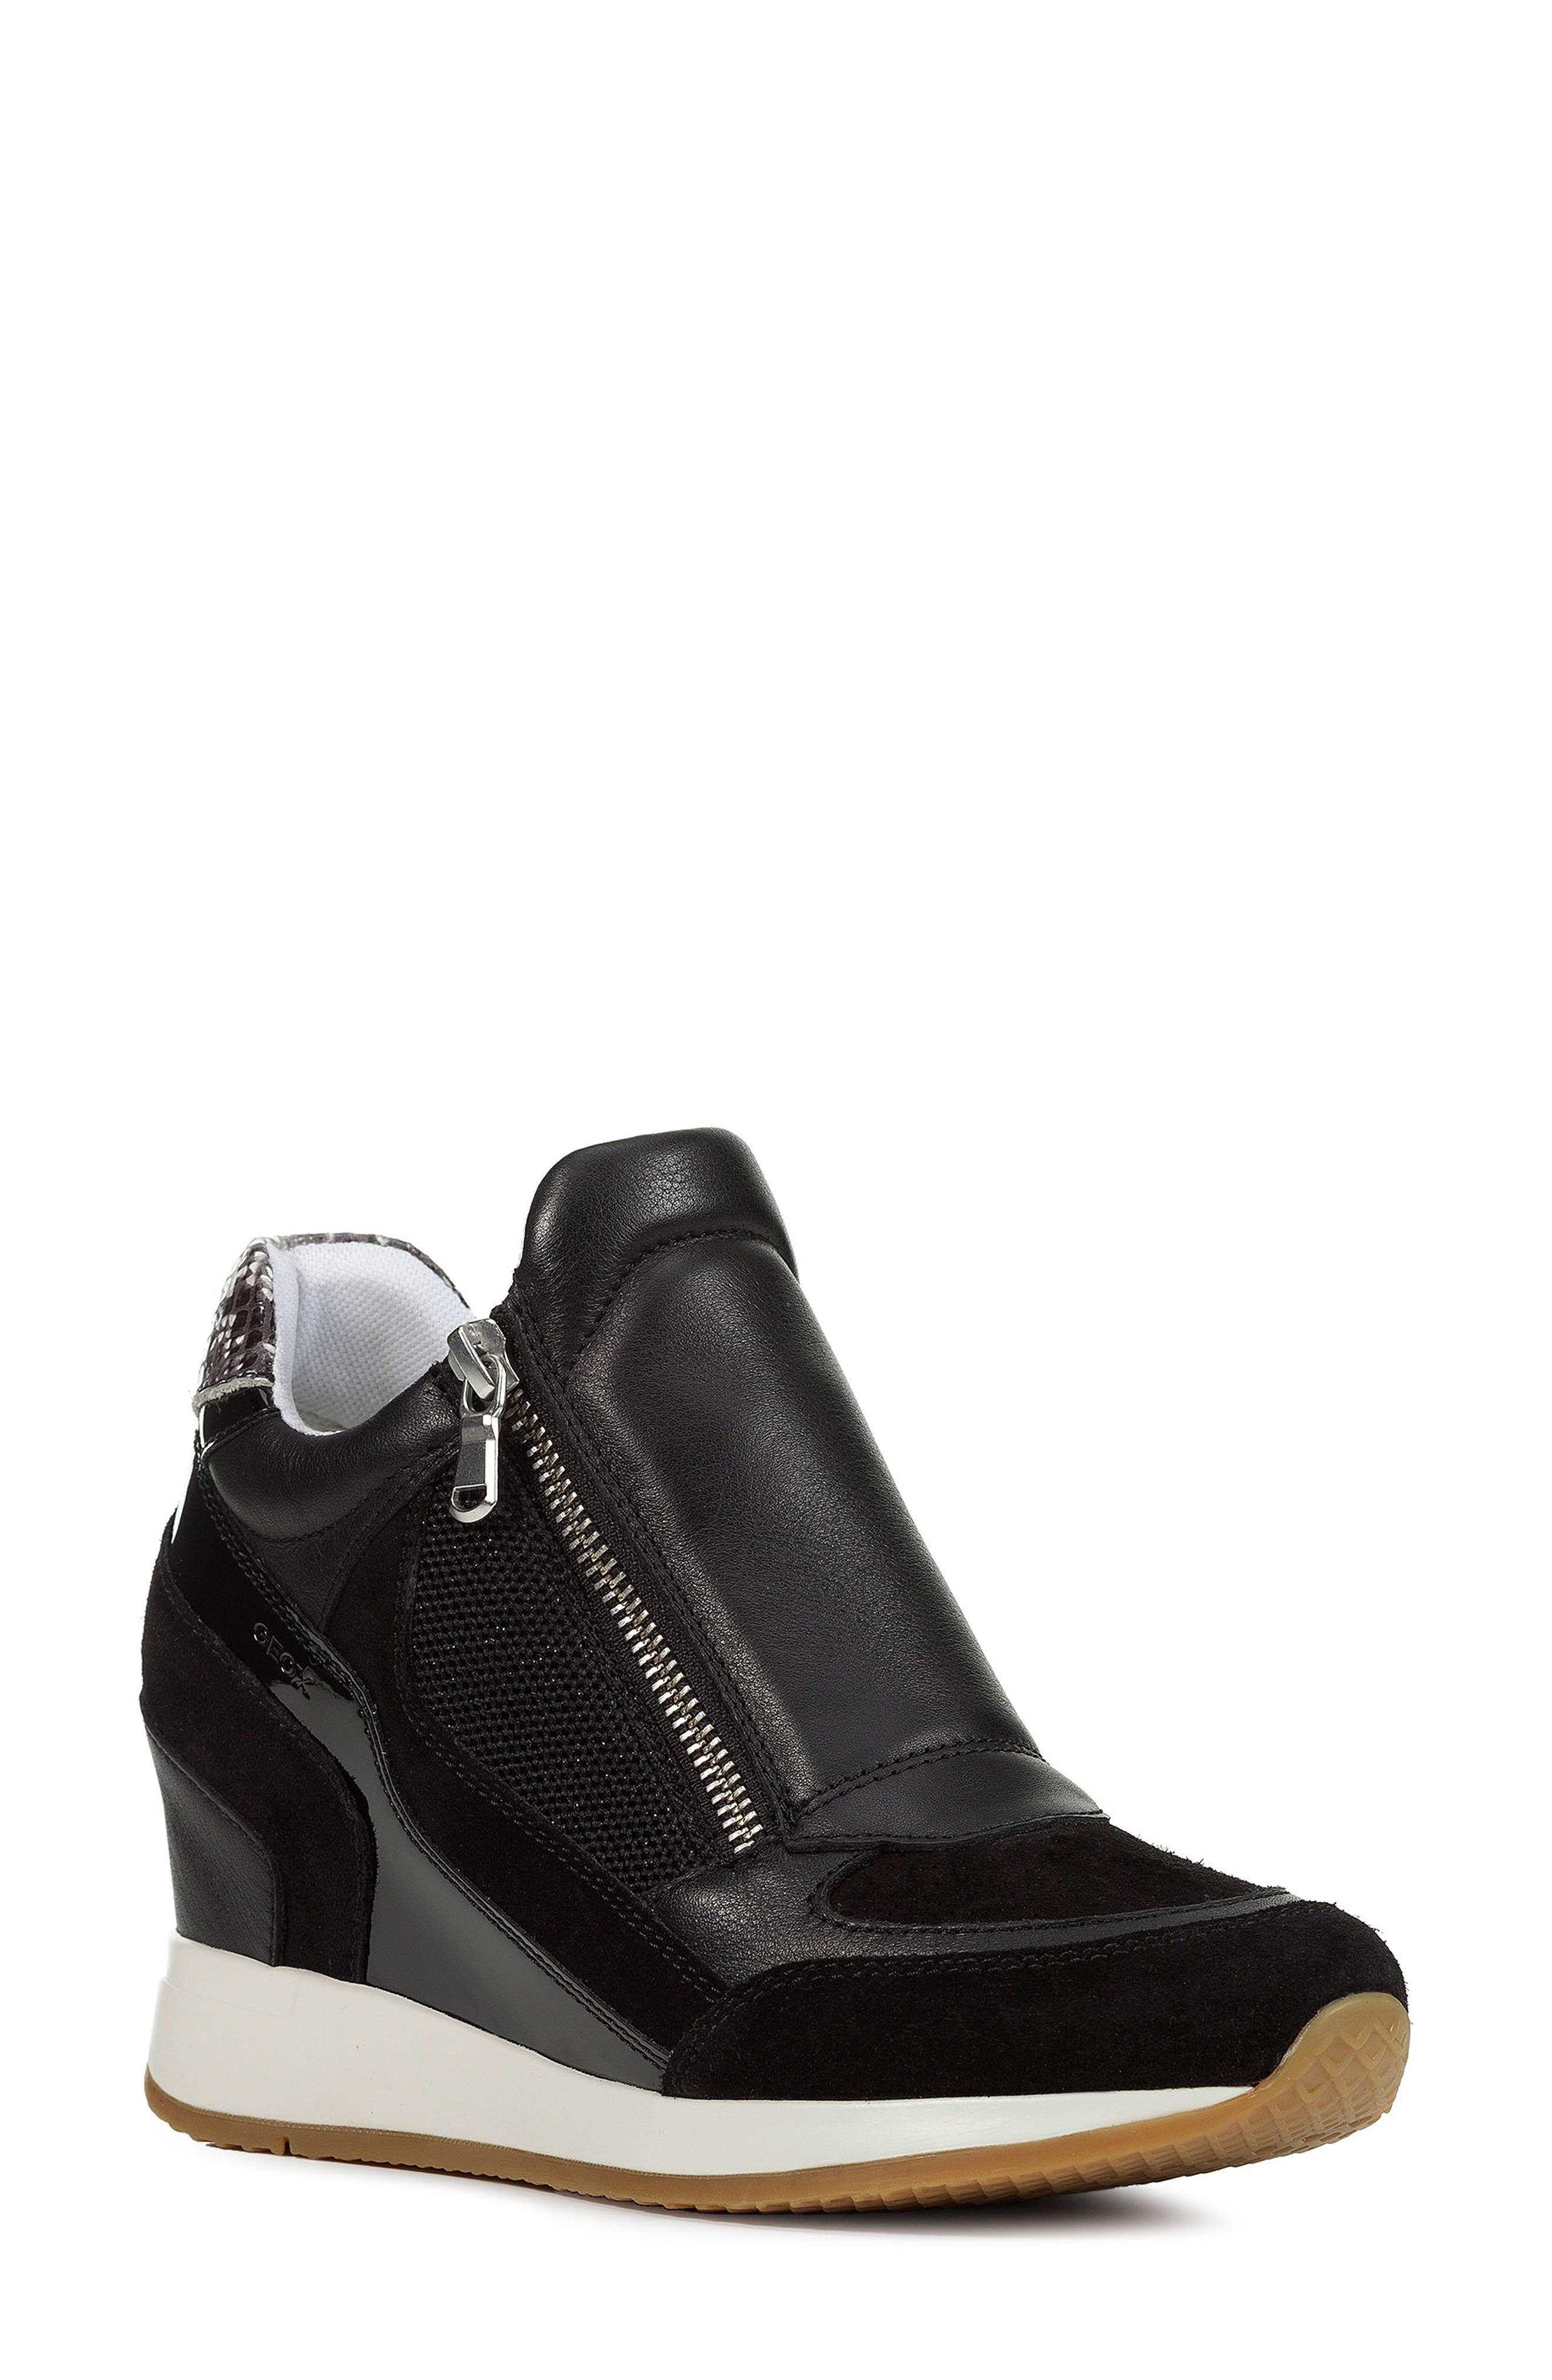 GEOX, Nydame Wedge Sneaker, Main thumbnail 1, color, BLACK/ BLACK LEATHER